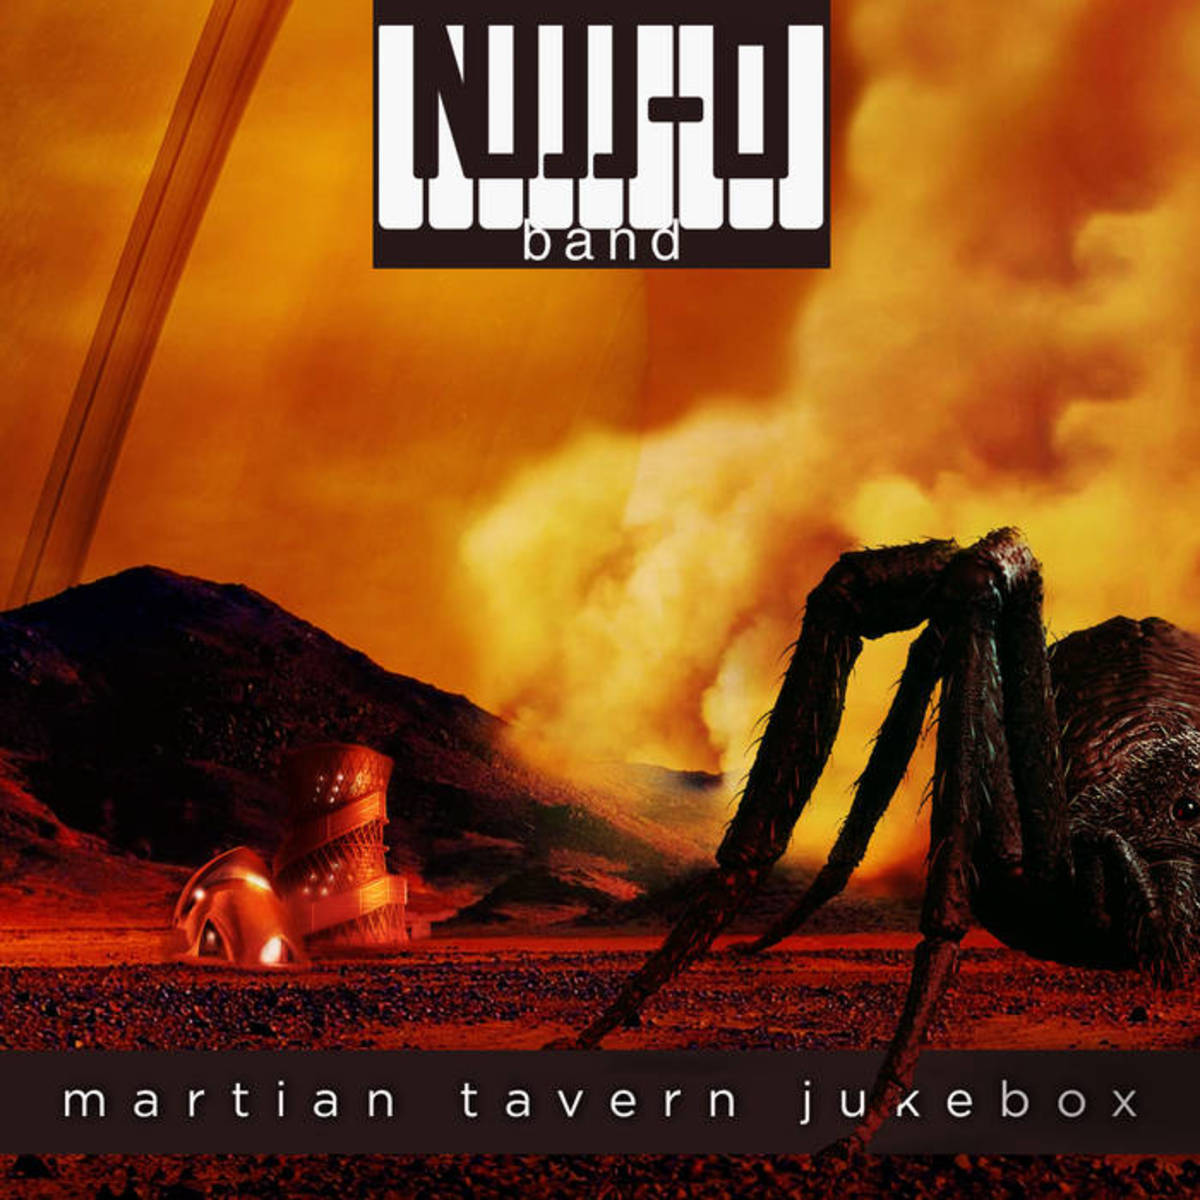 synth-album-review-martian-tavern-jukebox-by-null-o-band